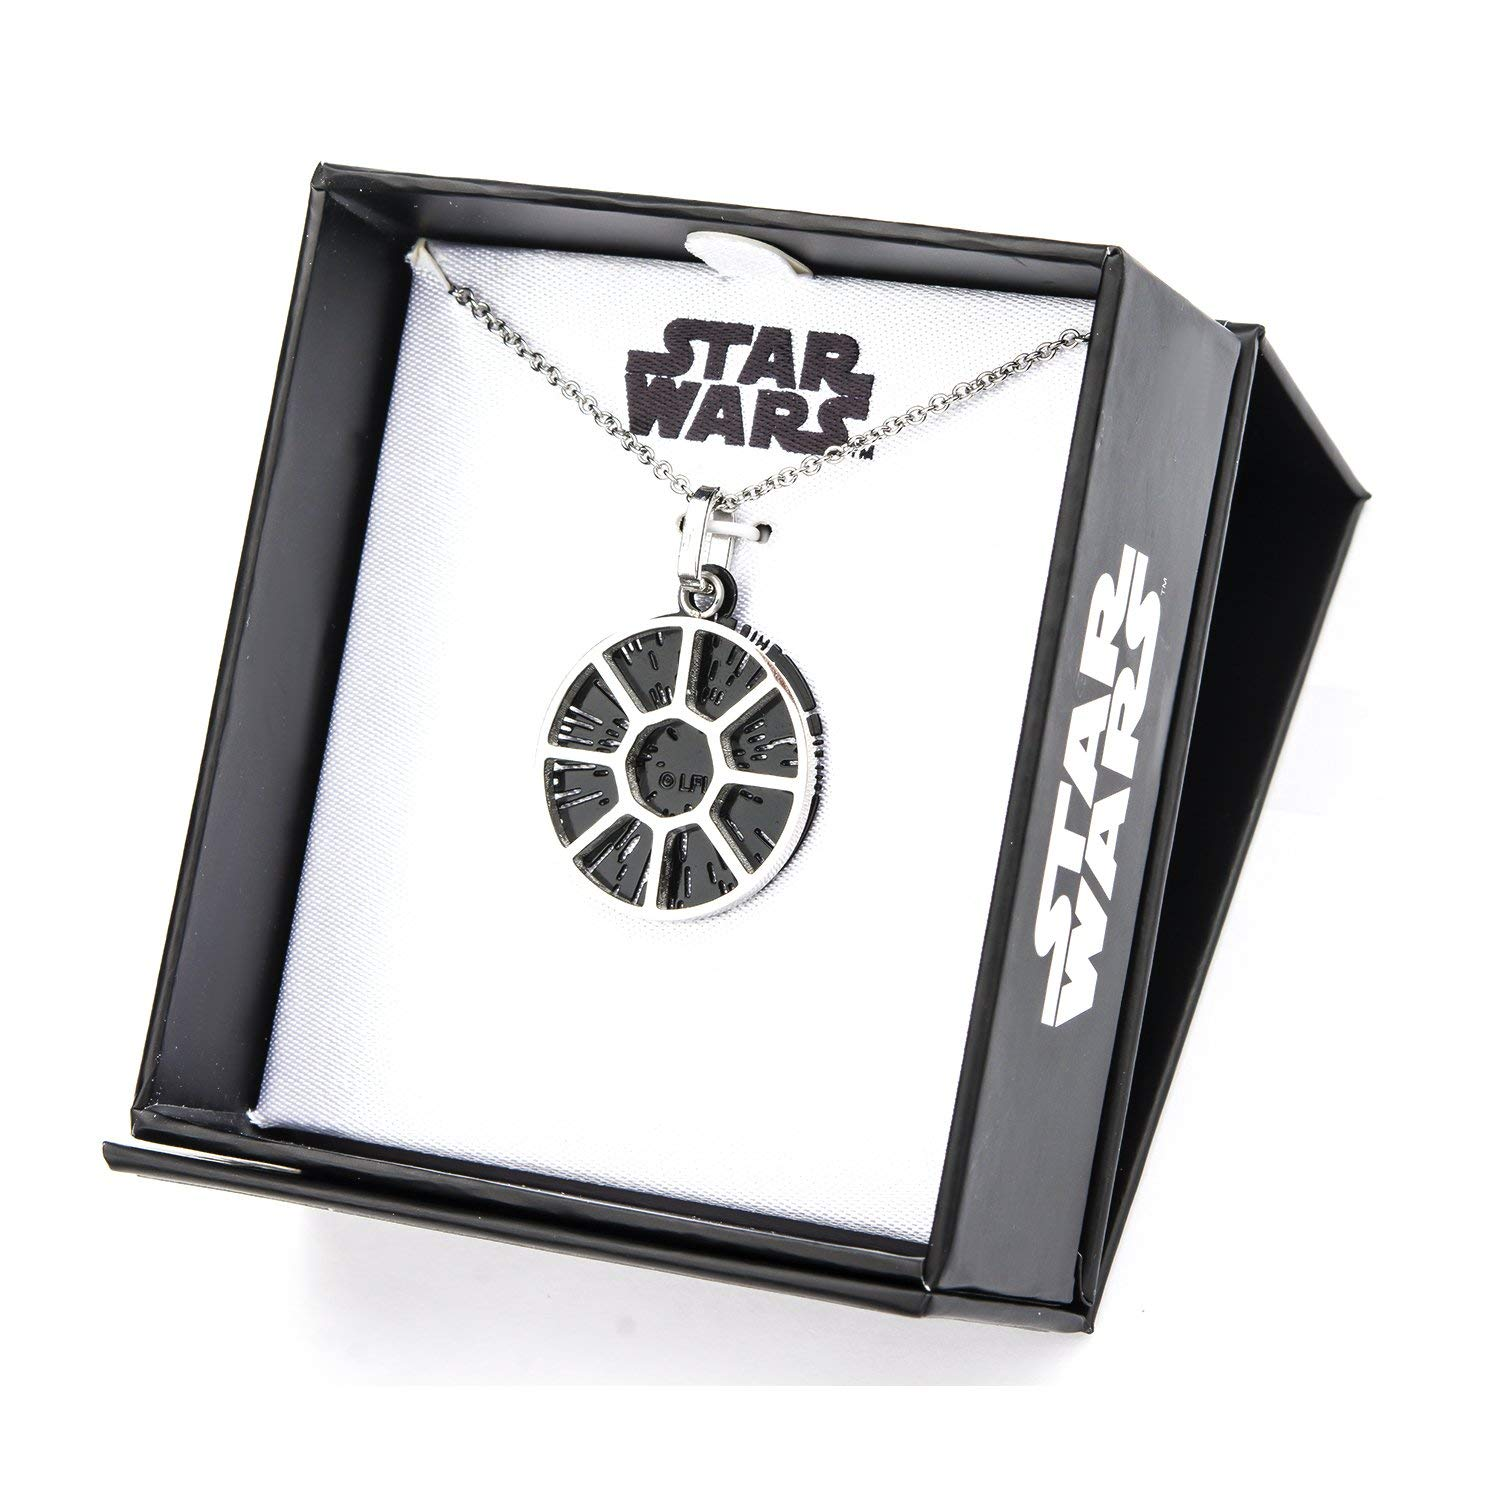 Body Vibe x Star Wars Cockpit Hyperspace Necklace on Amazon